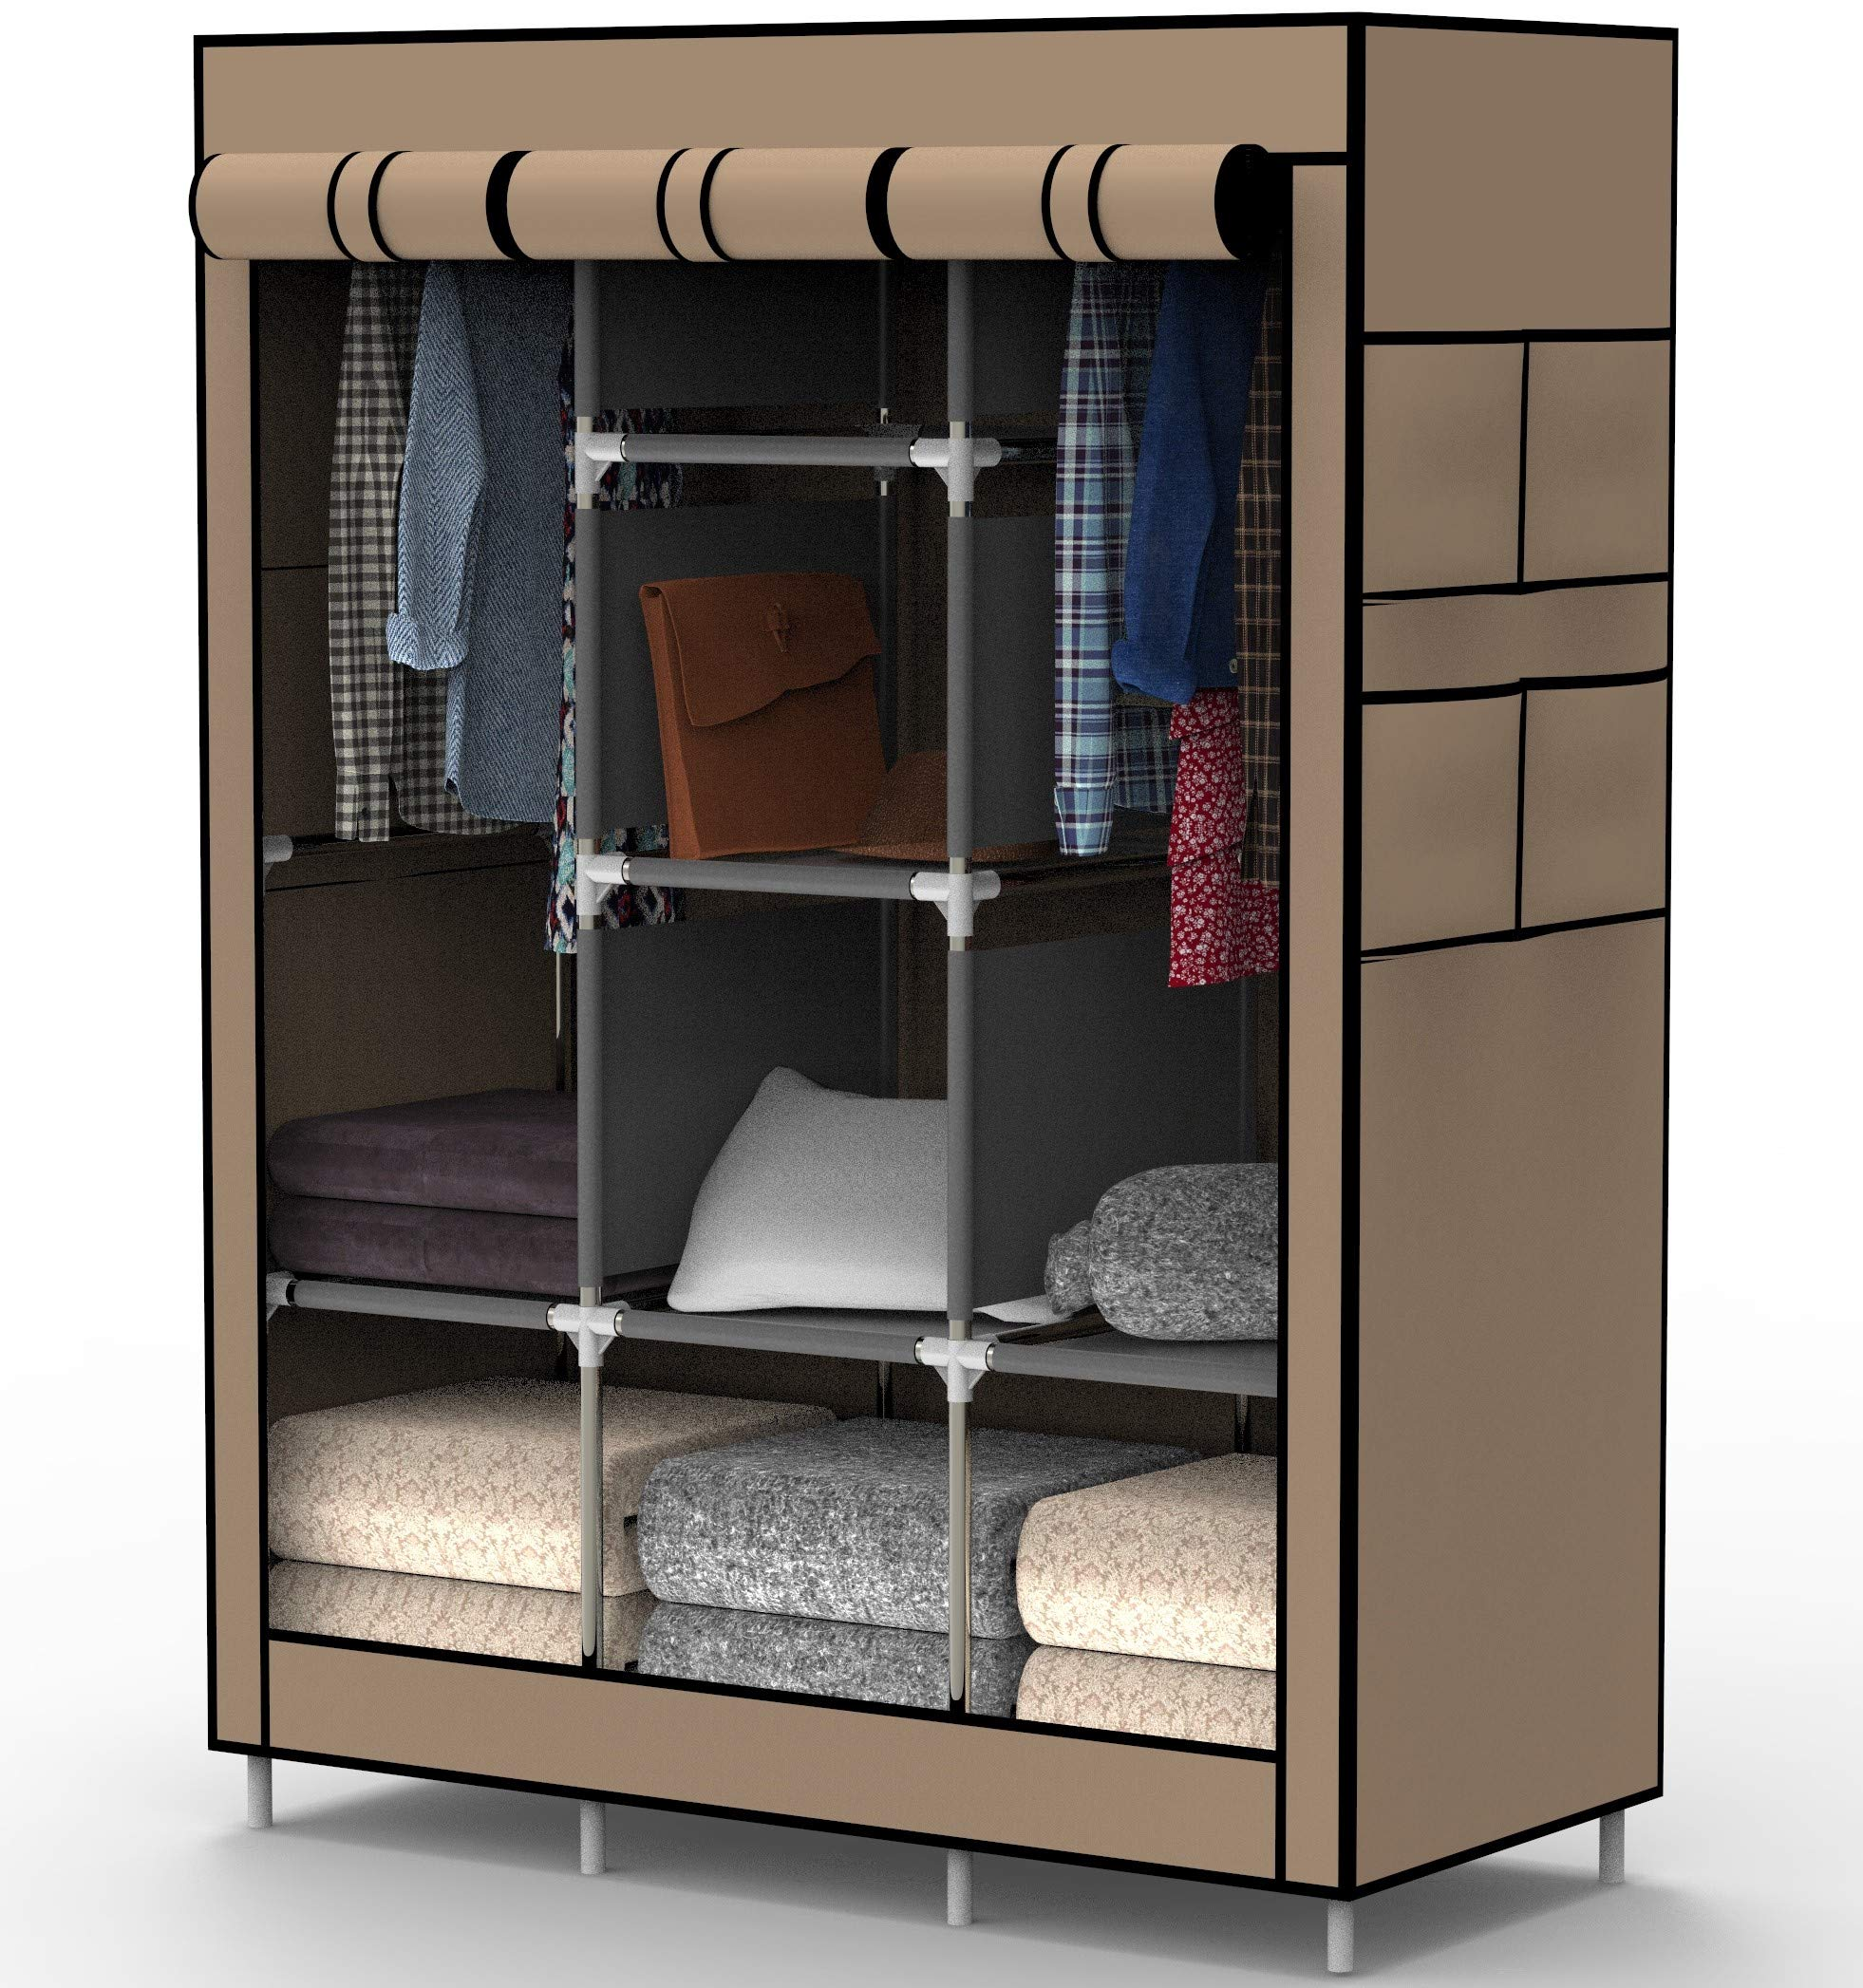 MYOUYA Clothes Closet Wardrobe - Bedroom Standing Closet Organizer for Clothing, Shoes and Accessories, 6 Cubes and 2 Hanging Sections (Brown)